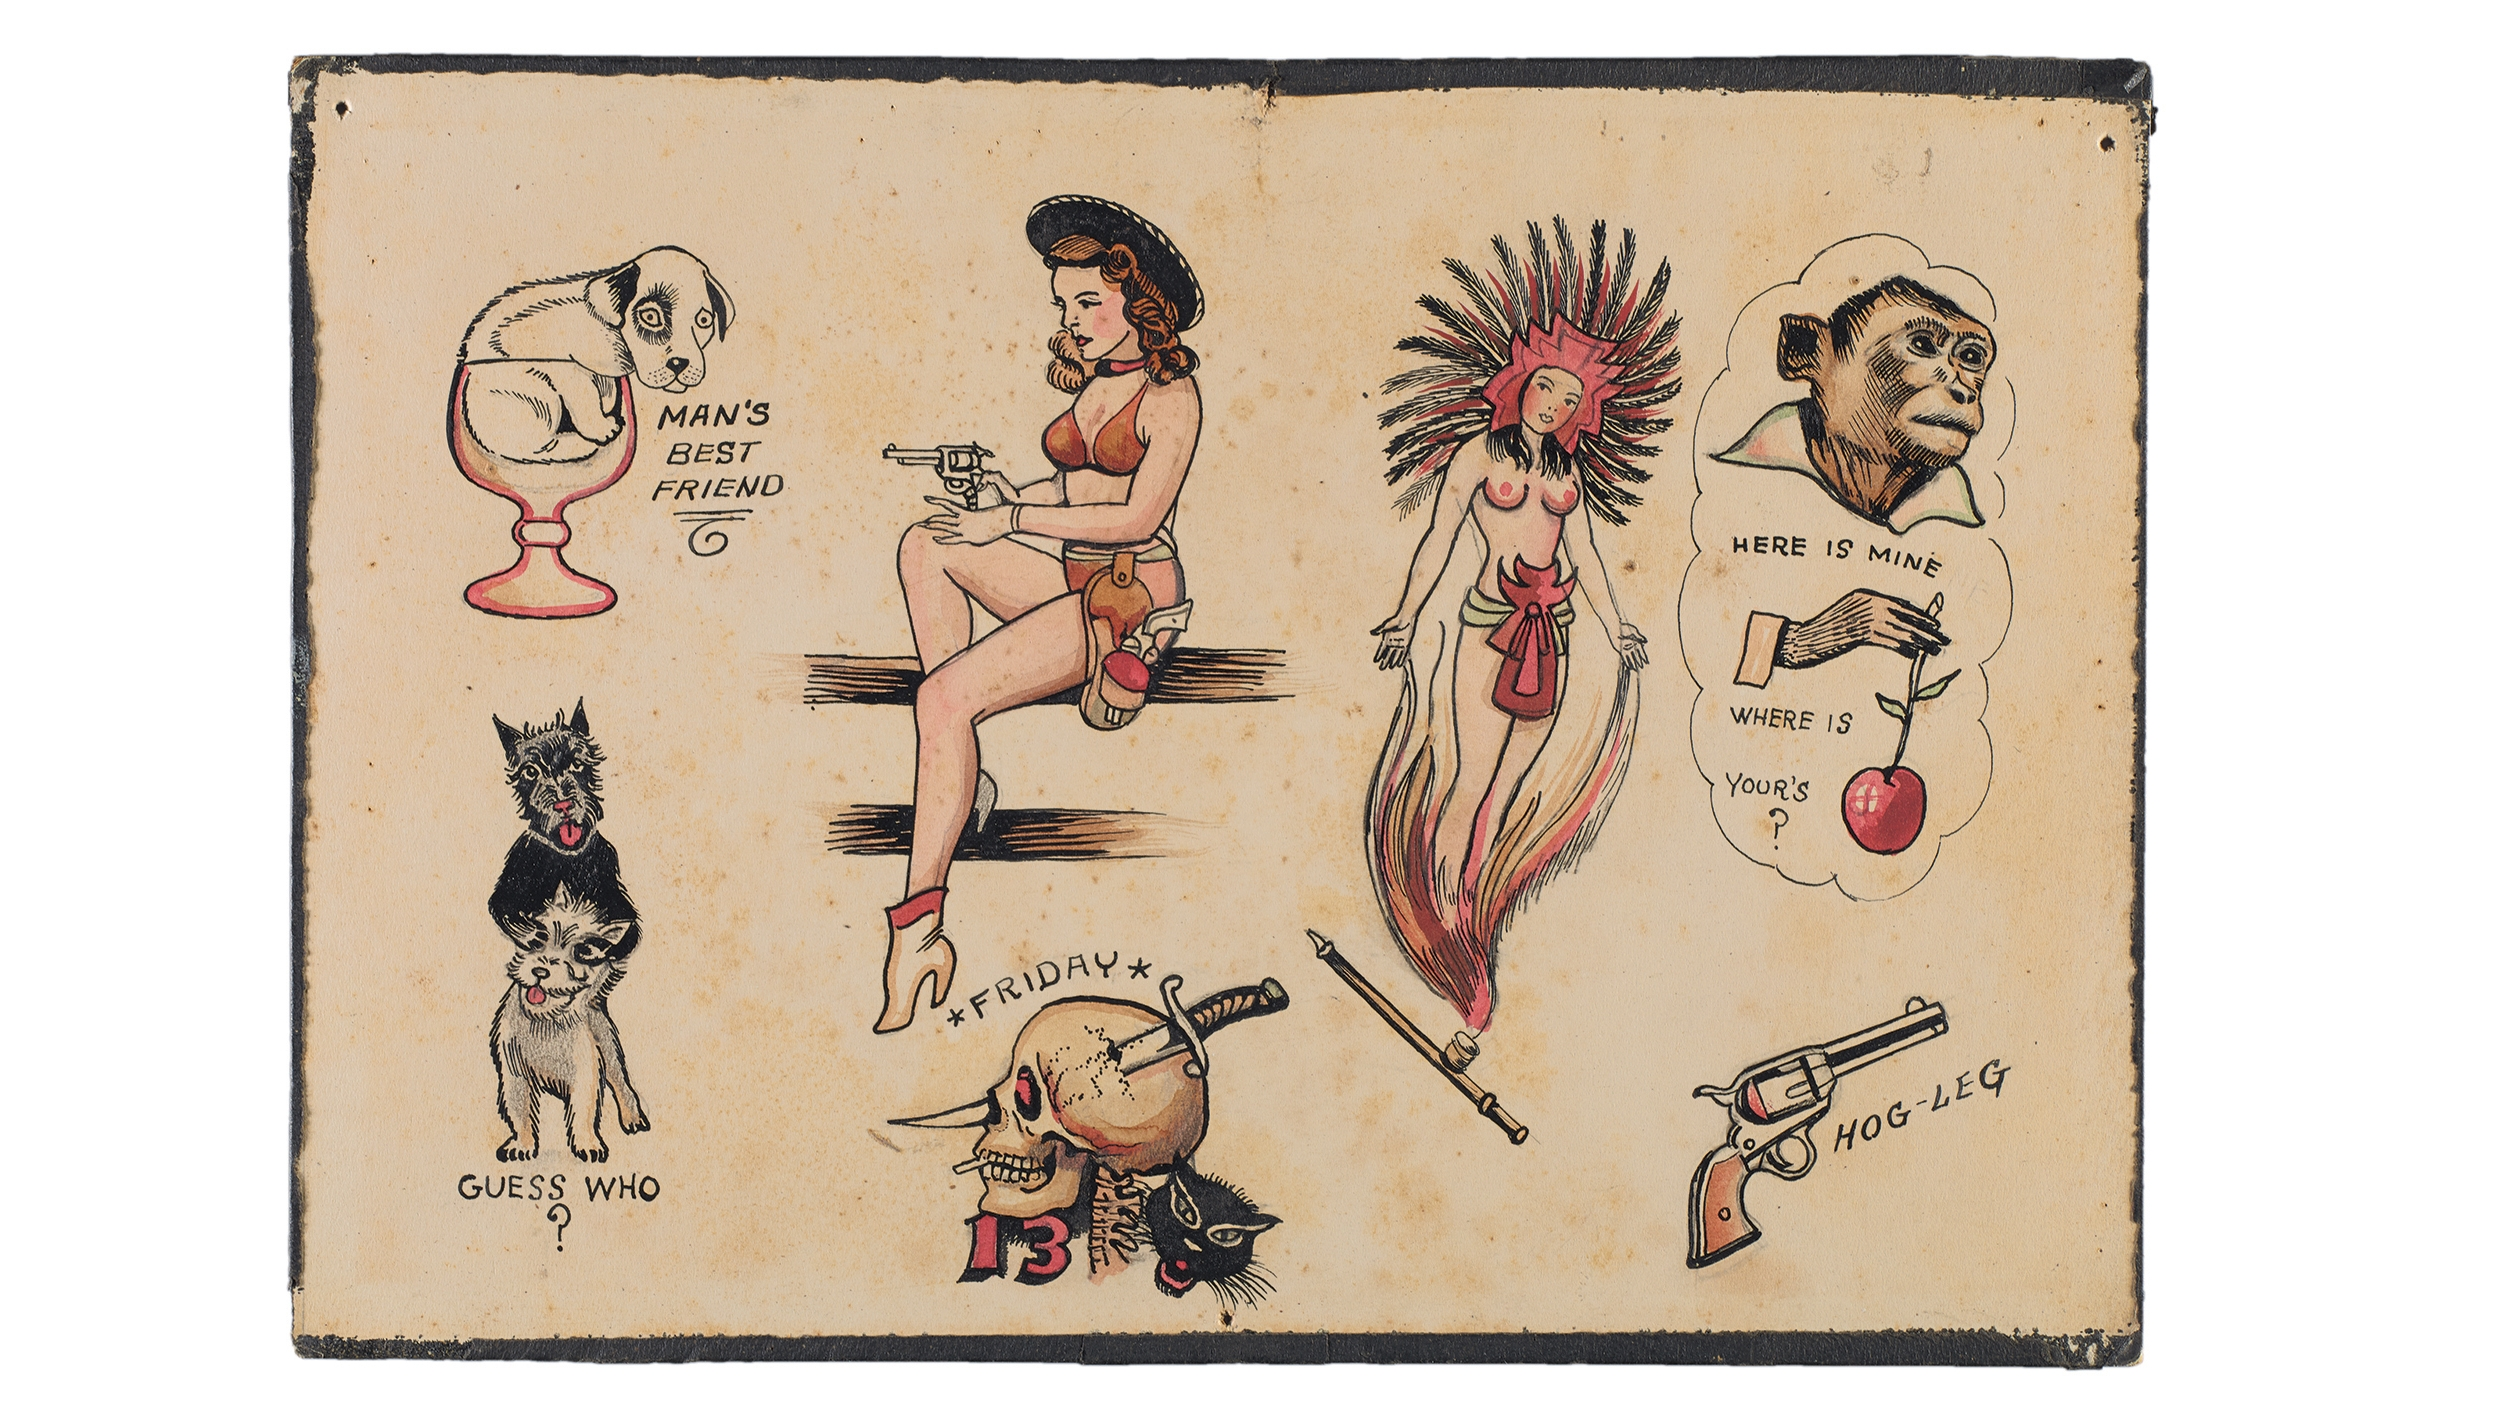 ledevintage_tattoo_flash_p251-647bafb2-ec53-4d97-982d-cd30a3d92c54